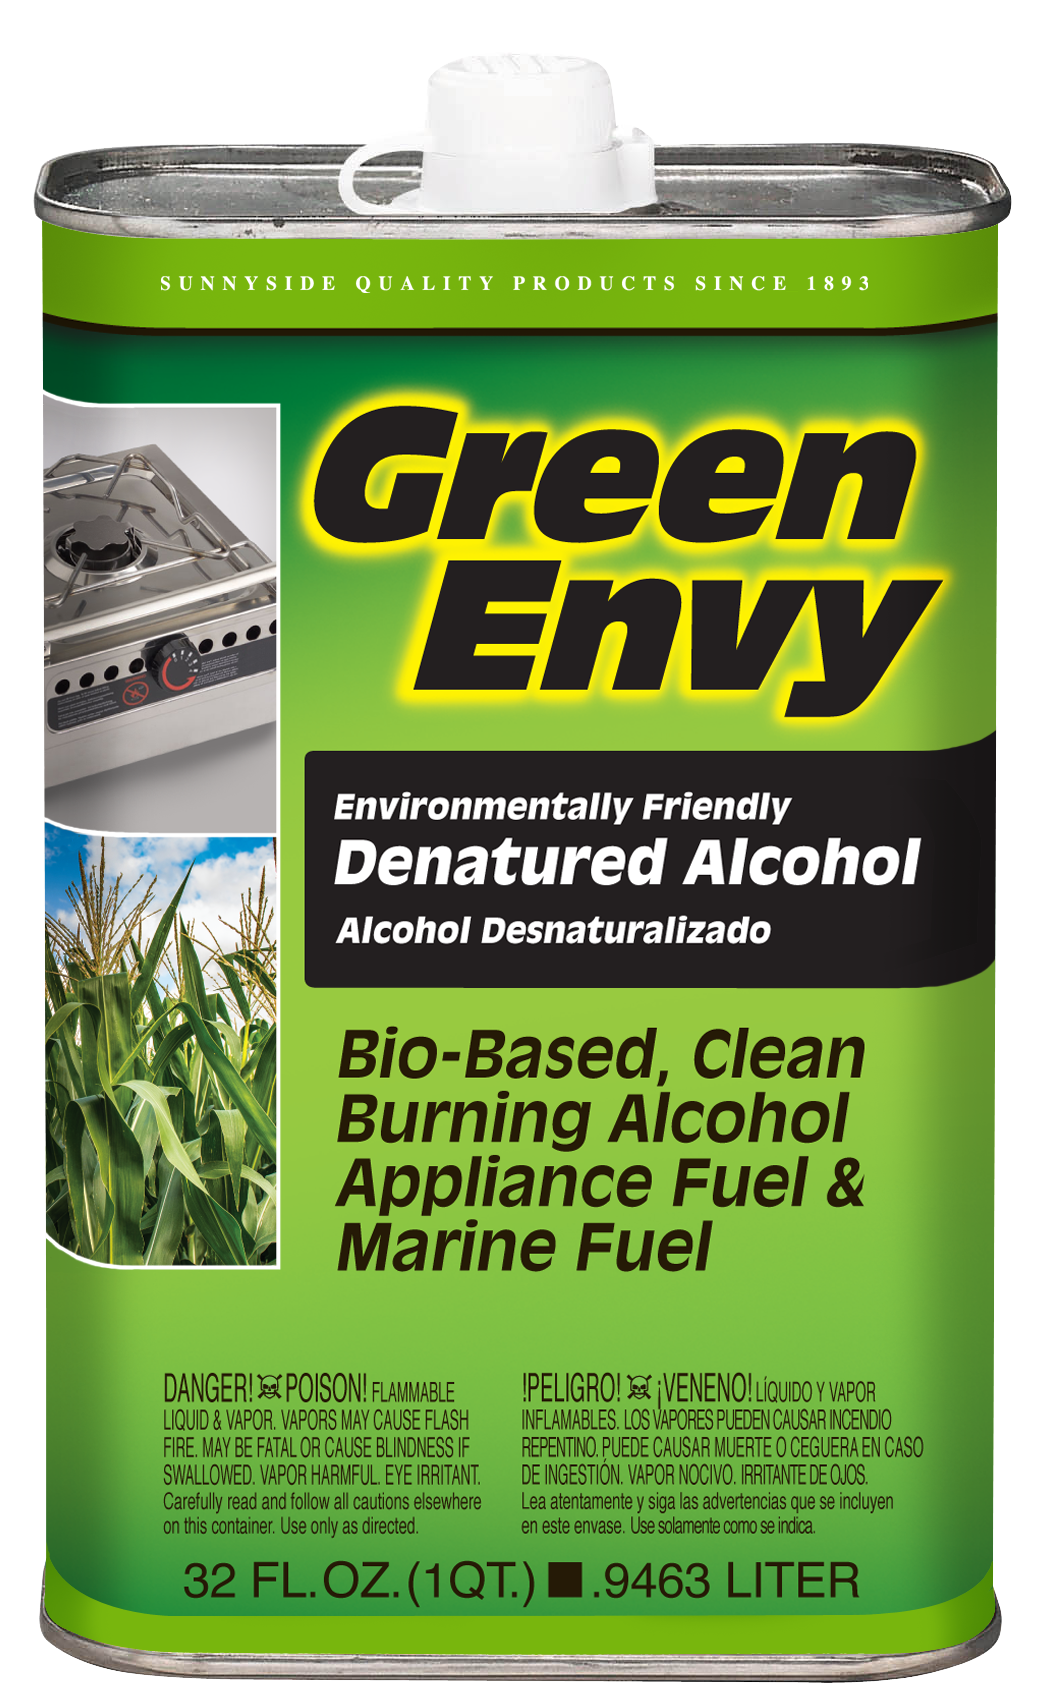 GREEN ENVY DENATURED ALCOHOL Product Image